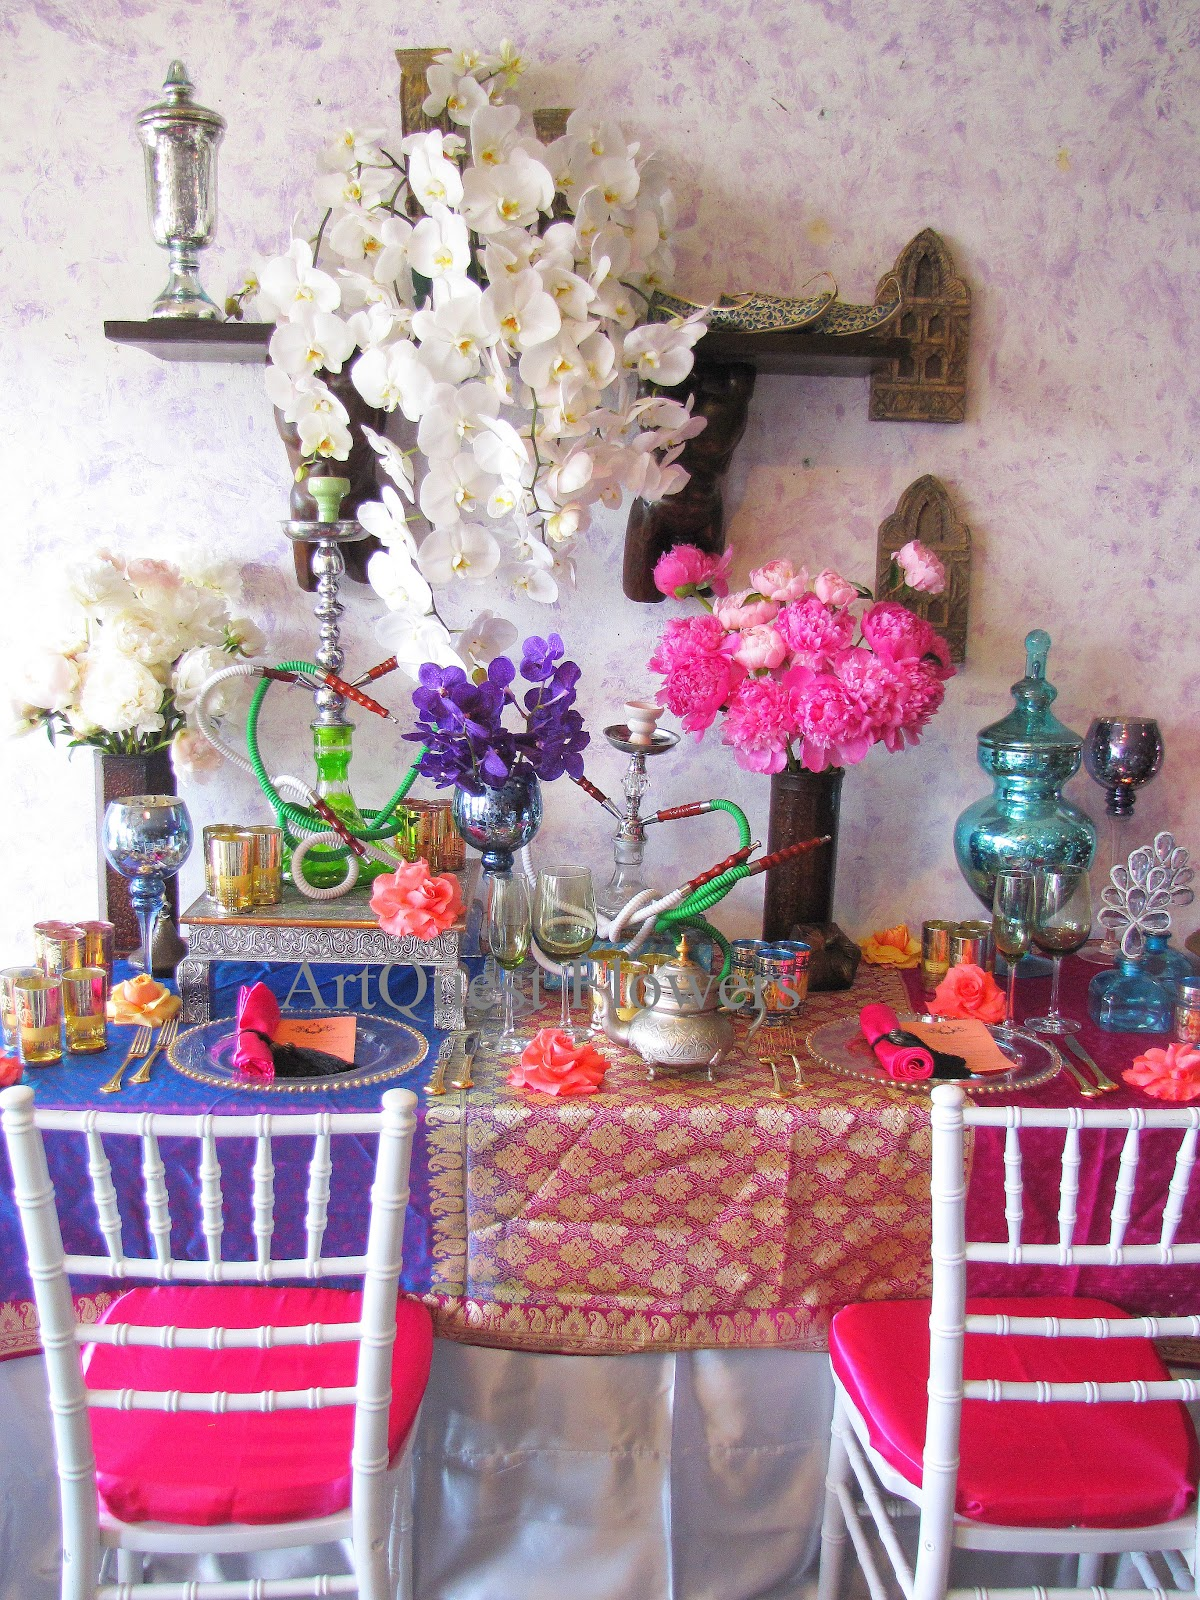 1_Moroccan Table Setting.JPG